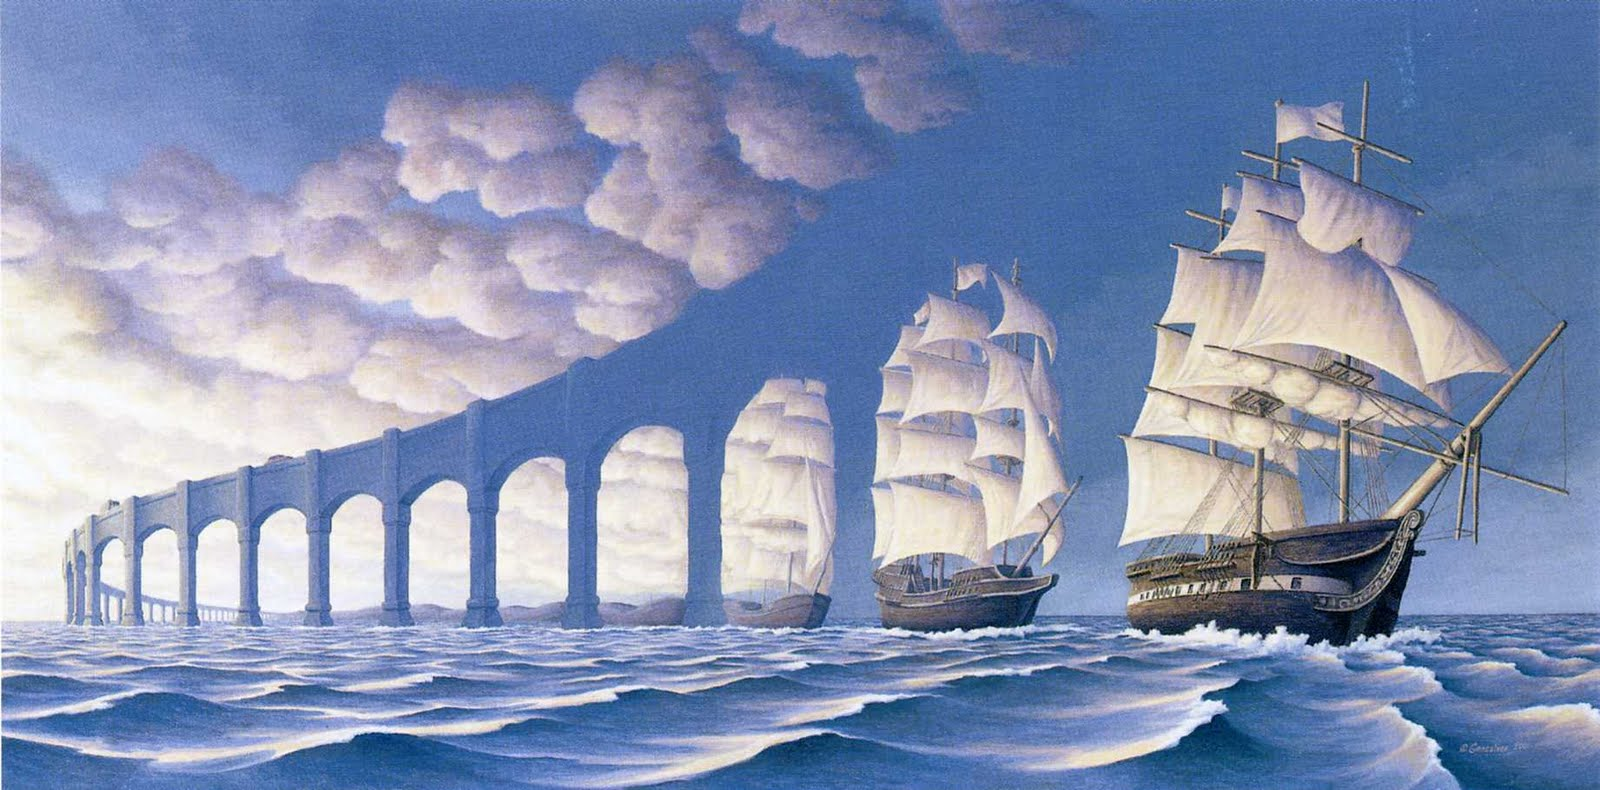 TheSunSetsSail by RobGonsalves